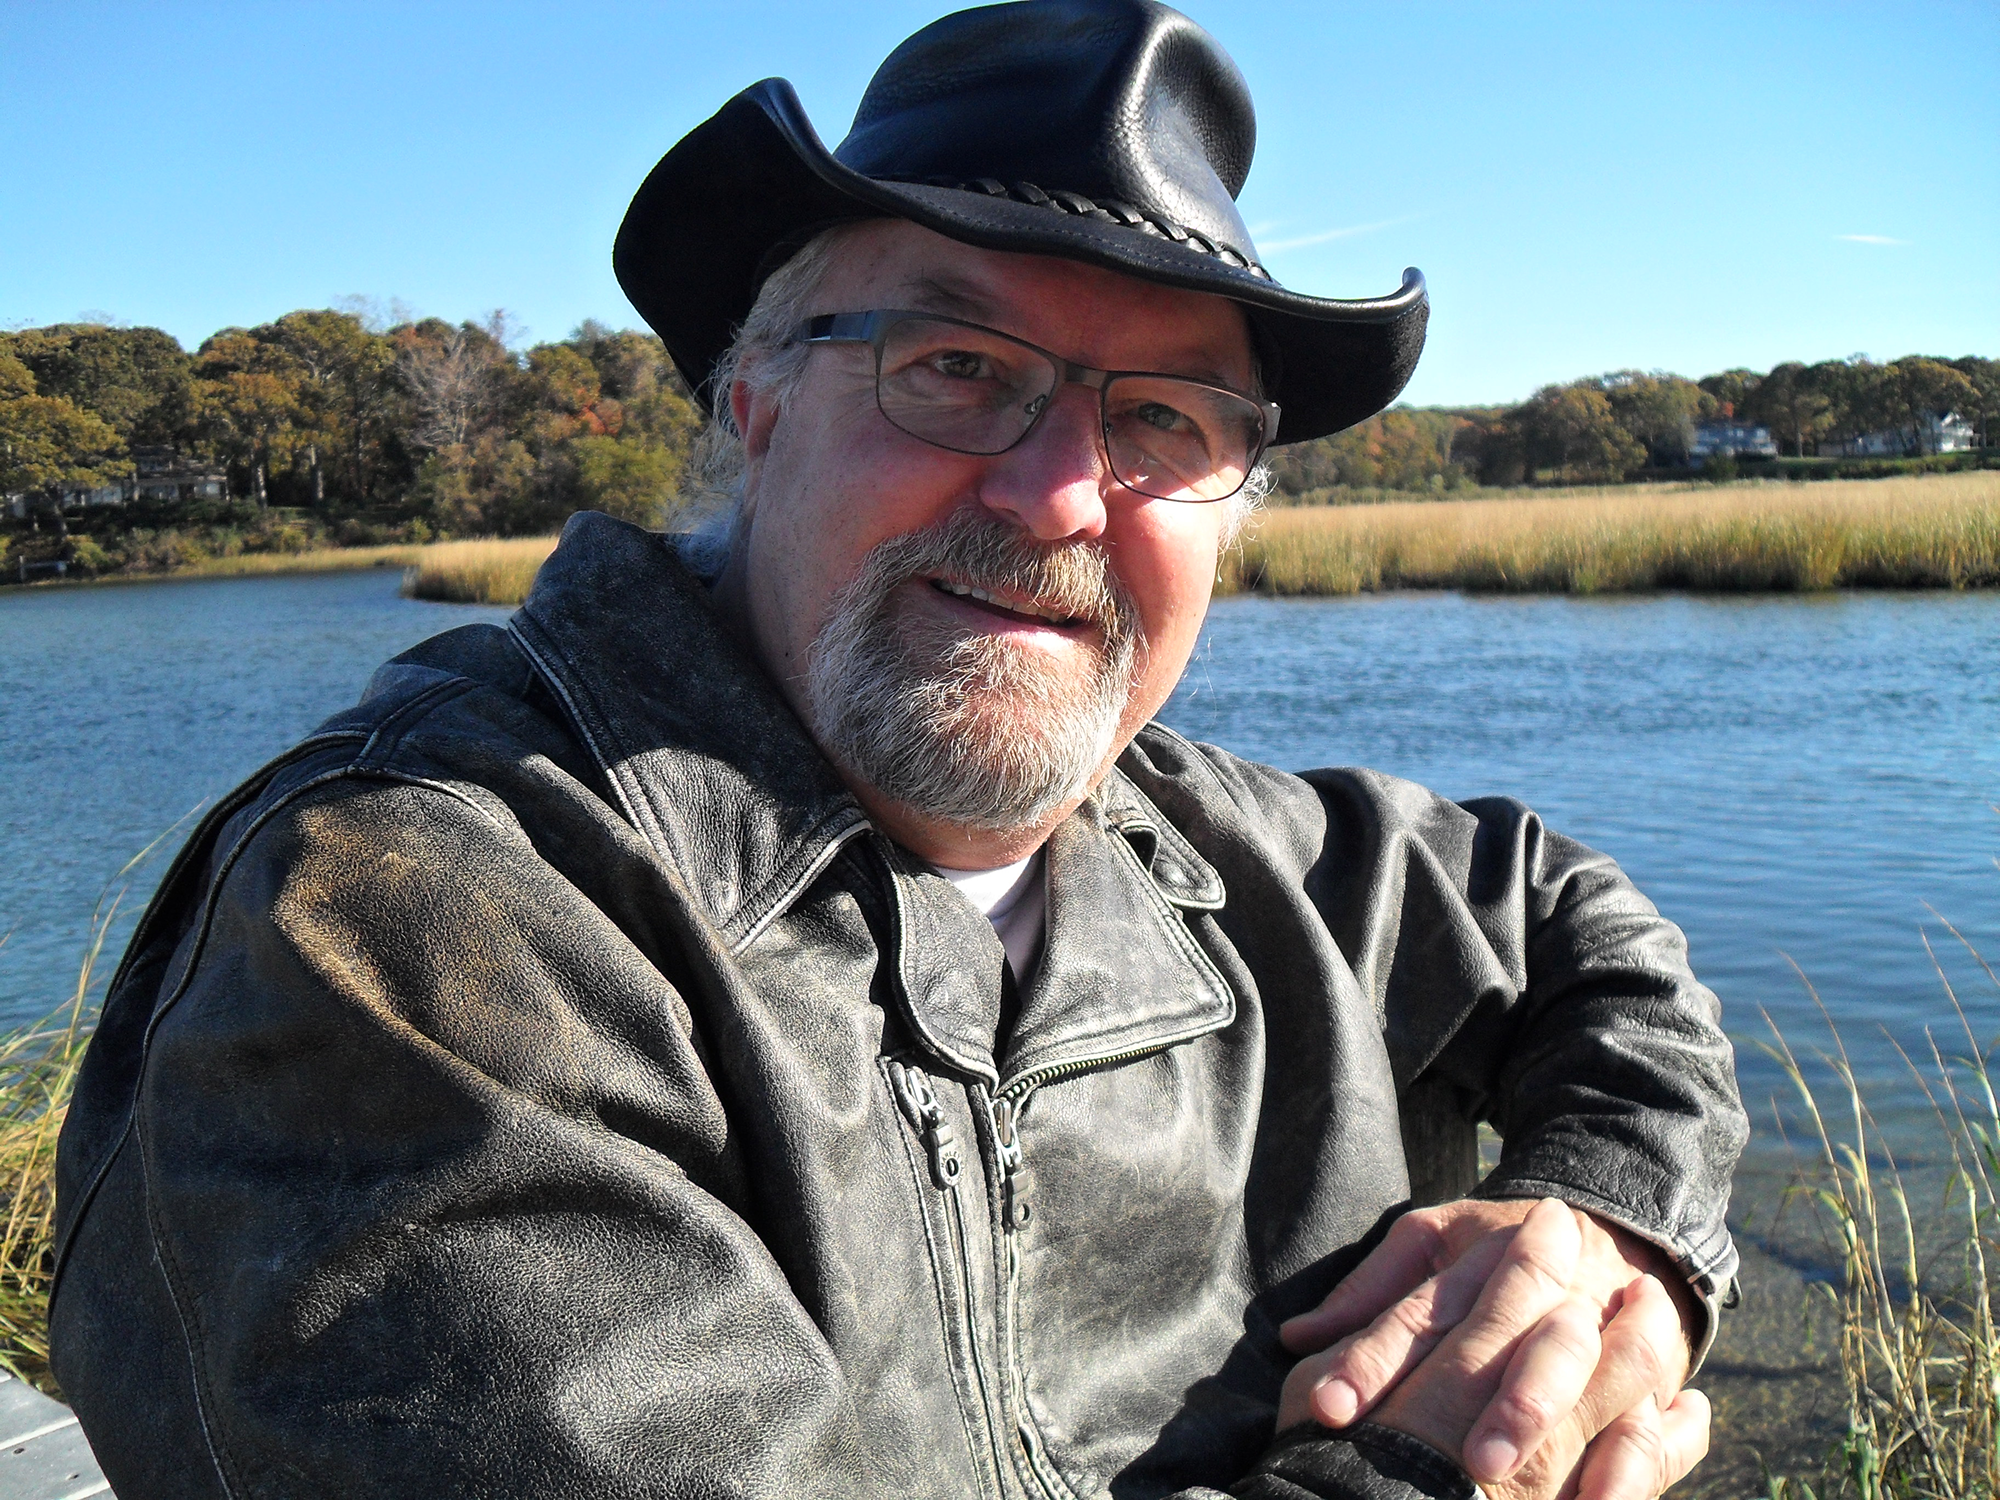 W.J. Sheehan, your intrepid host and author of Bigfoot: Terror In The Woods, Sightings and Encounters.